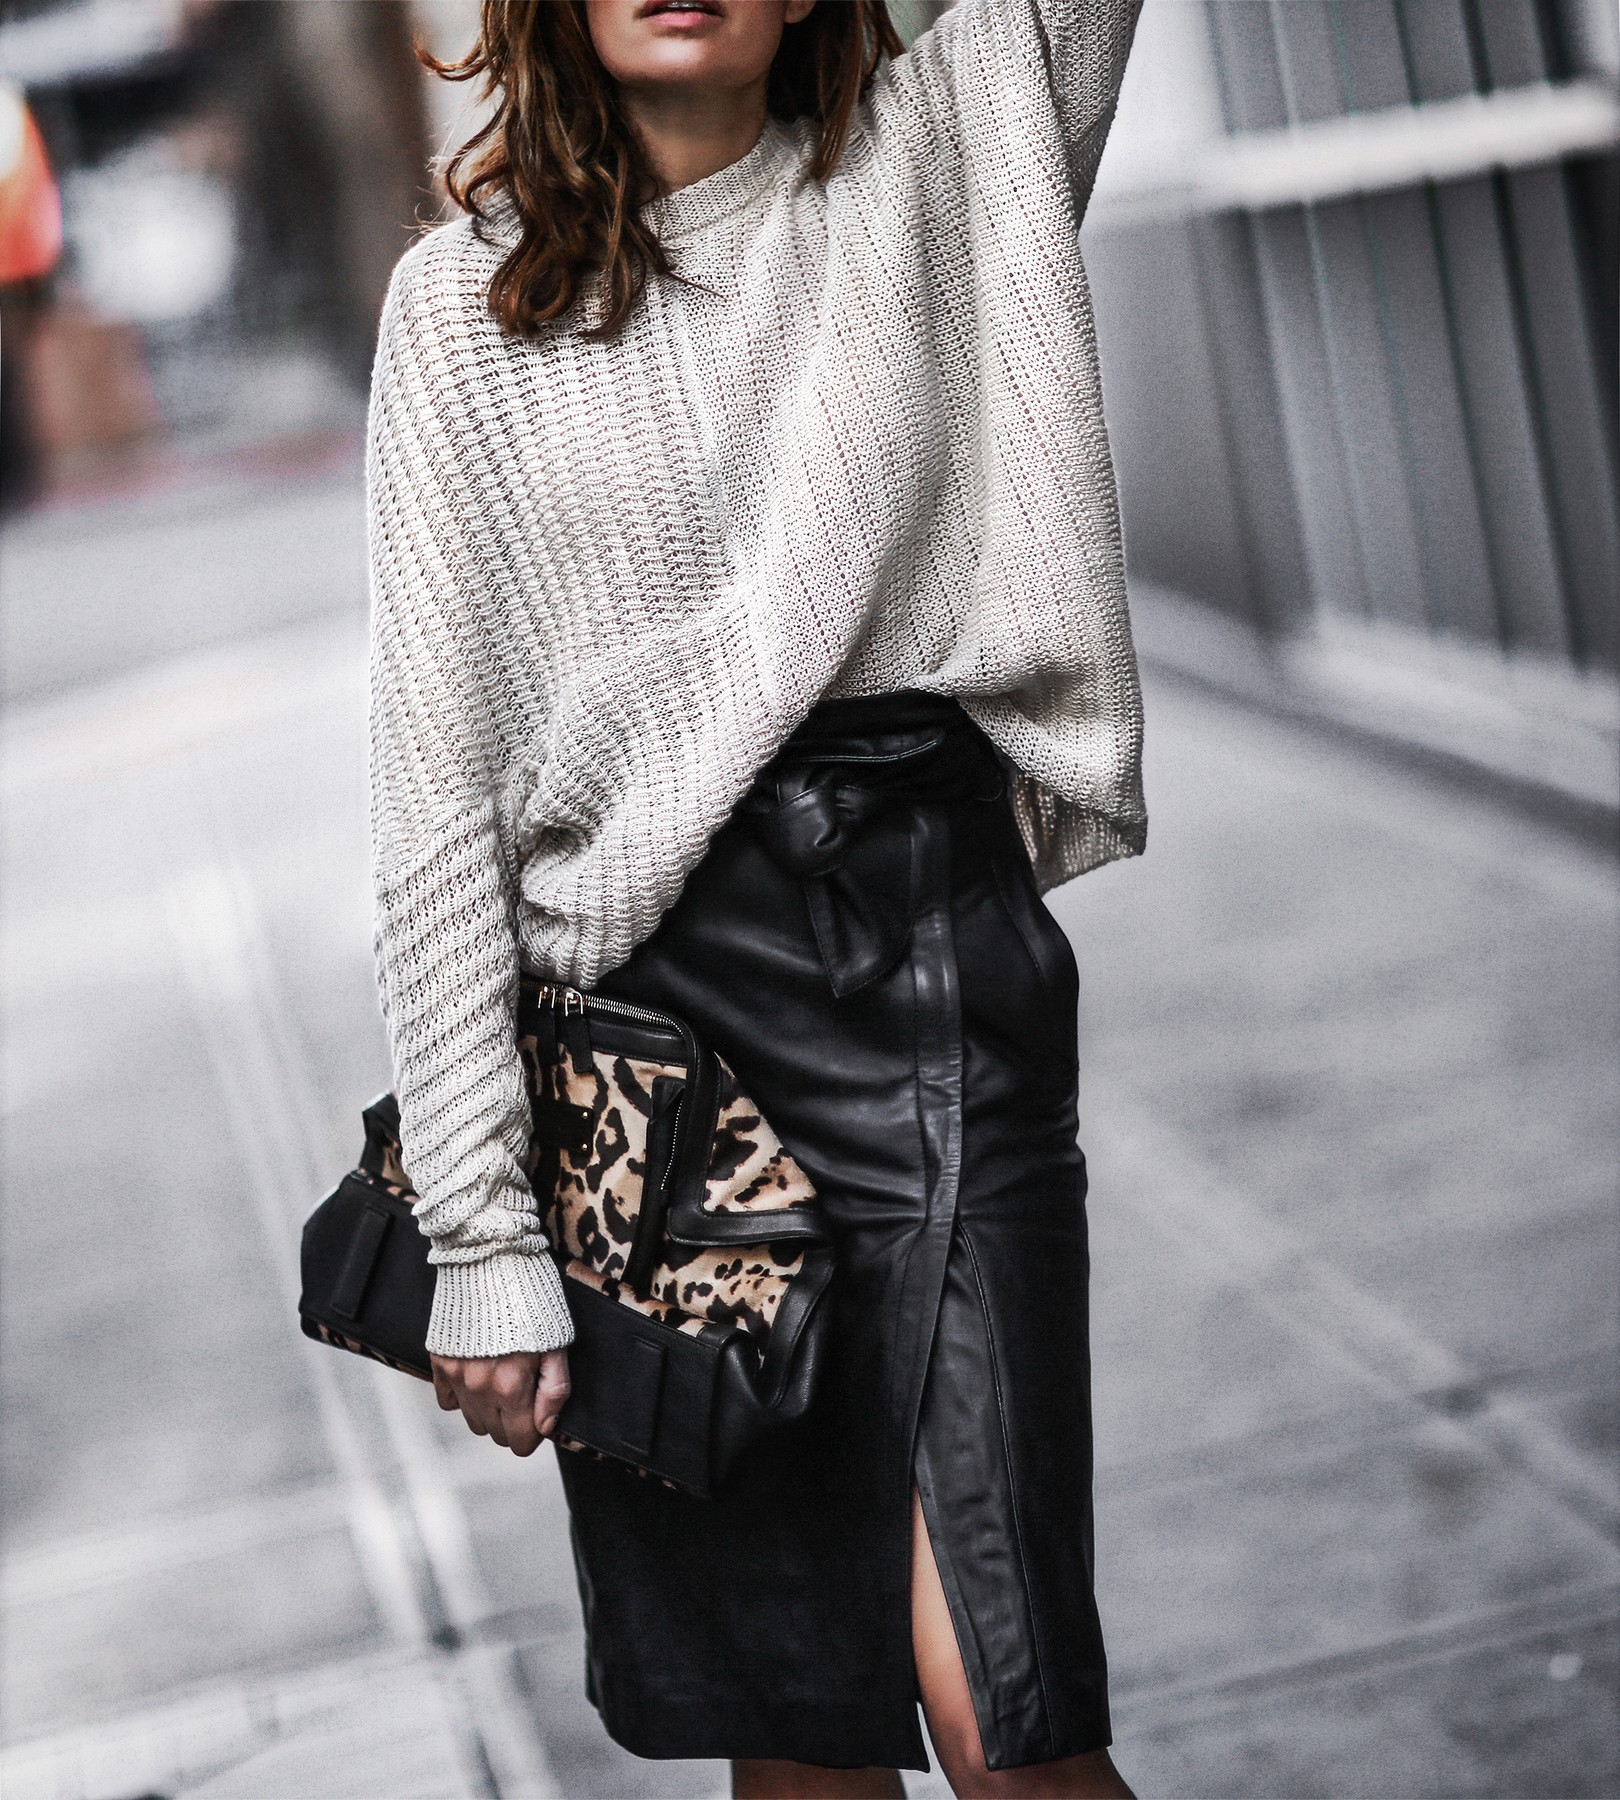 stella mccartney sweater, leather skirt, leopard bag